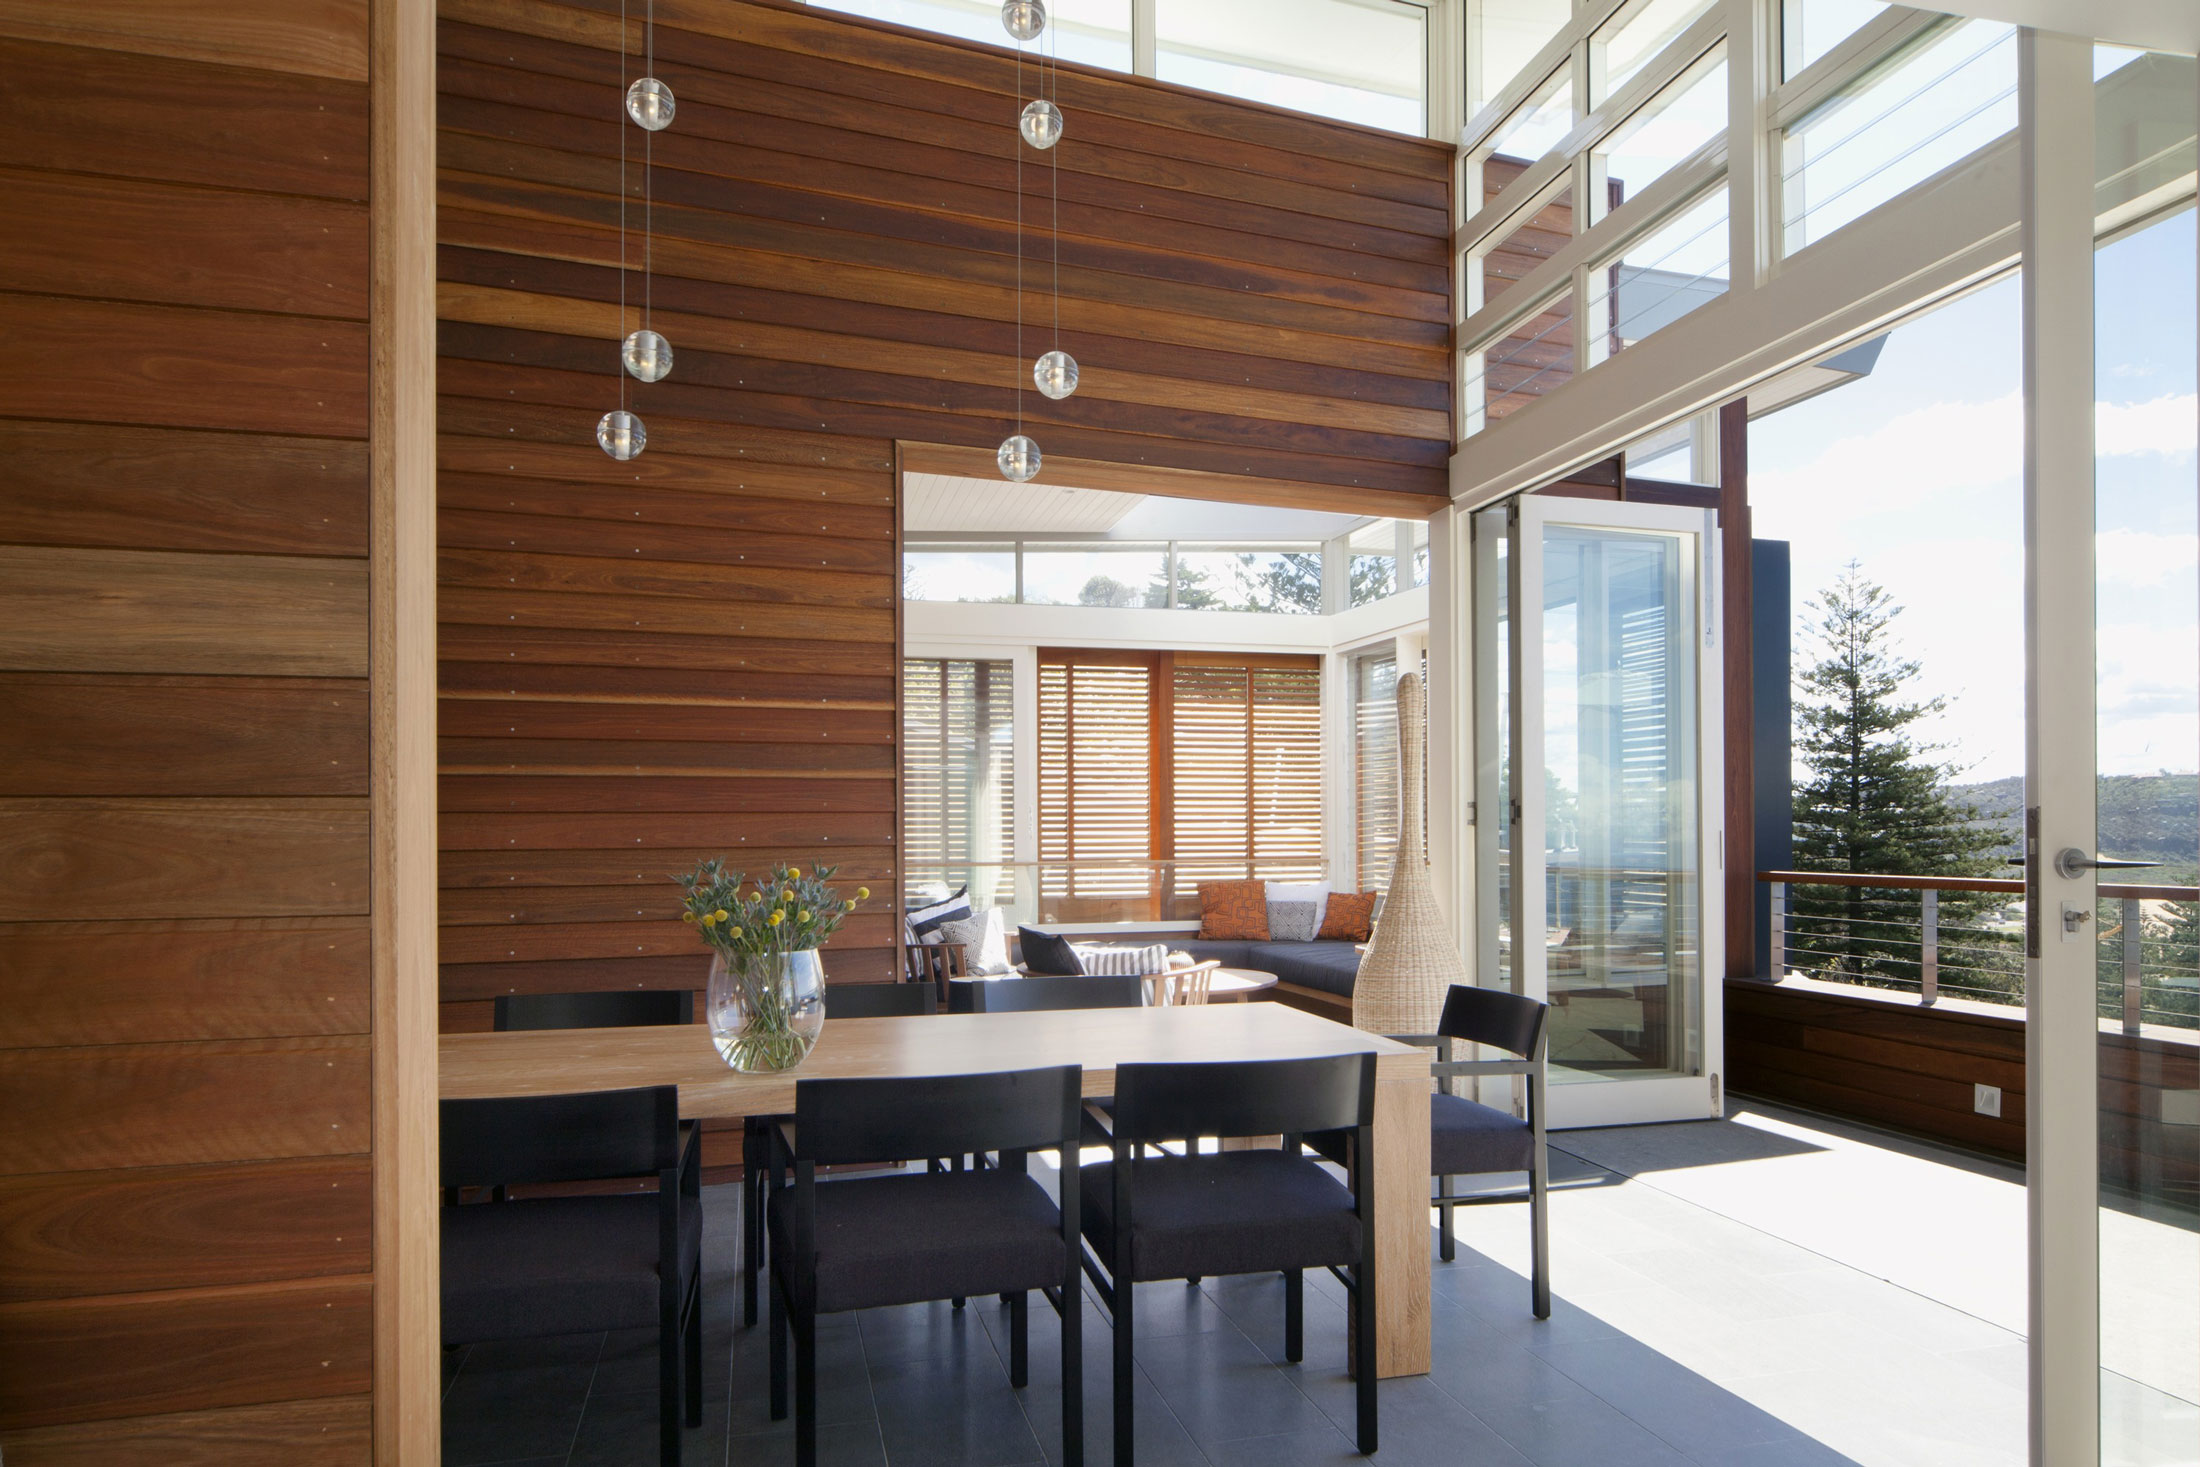 Private Residence by Pike Withers Interior Architecture (8)